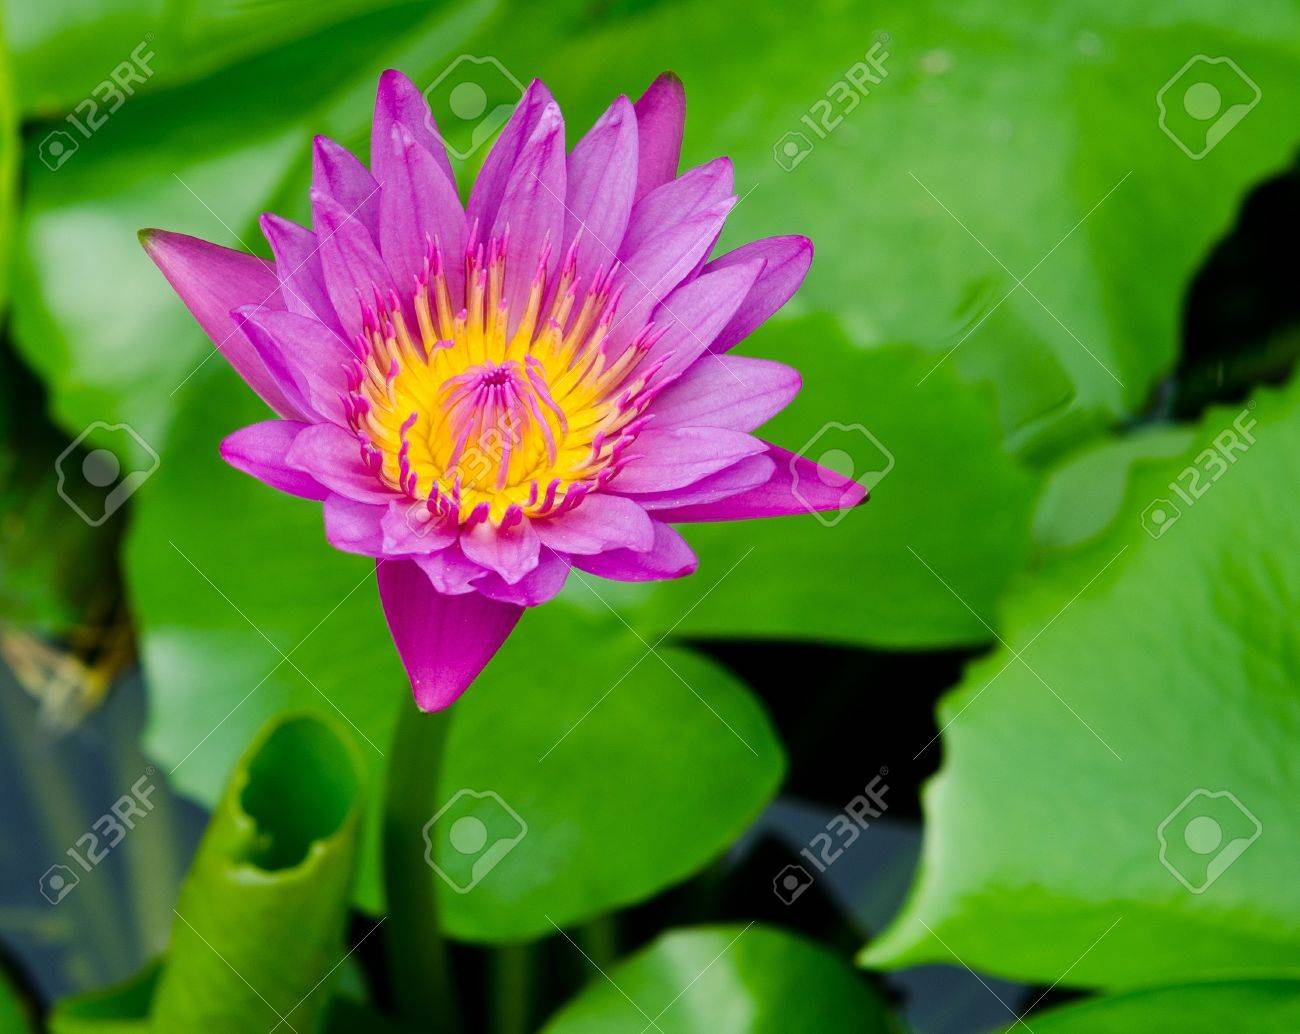 Lotus Blossom Or Water Lily Flower Blooming On Pond Stock Photo